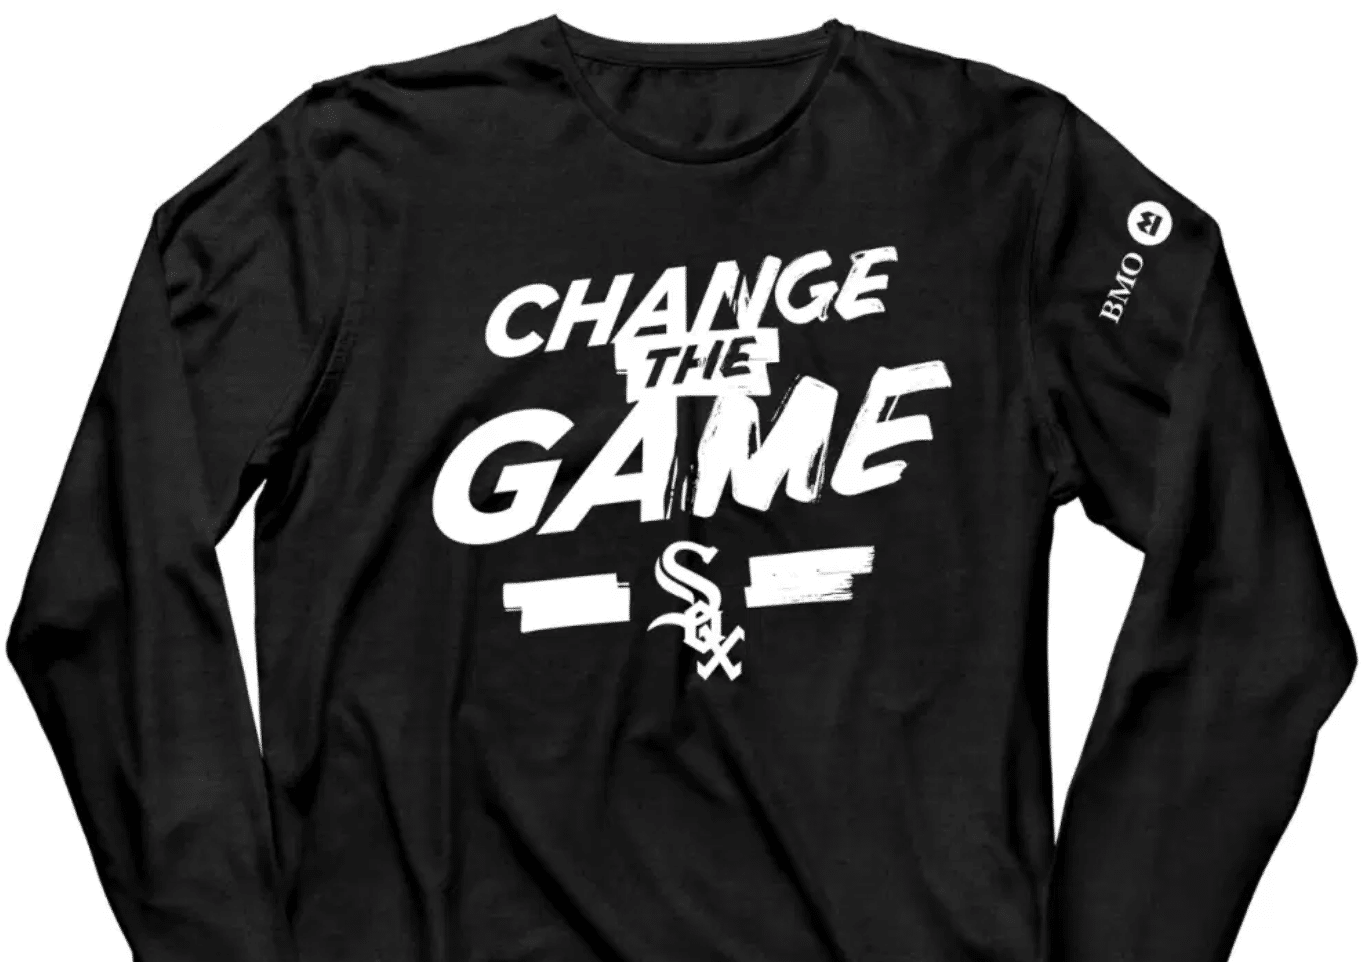 White Sox Promotions and Tickets